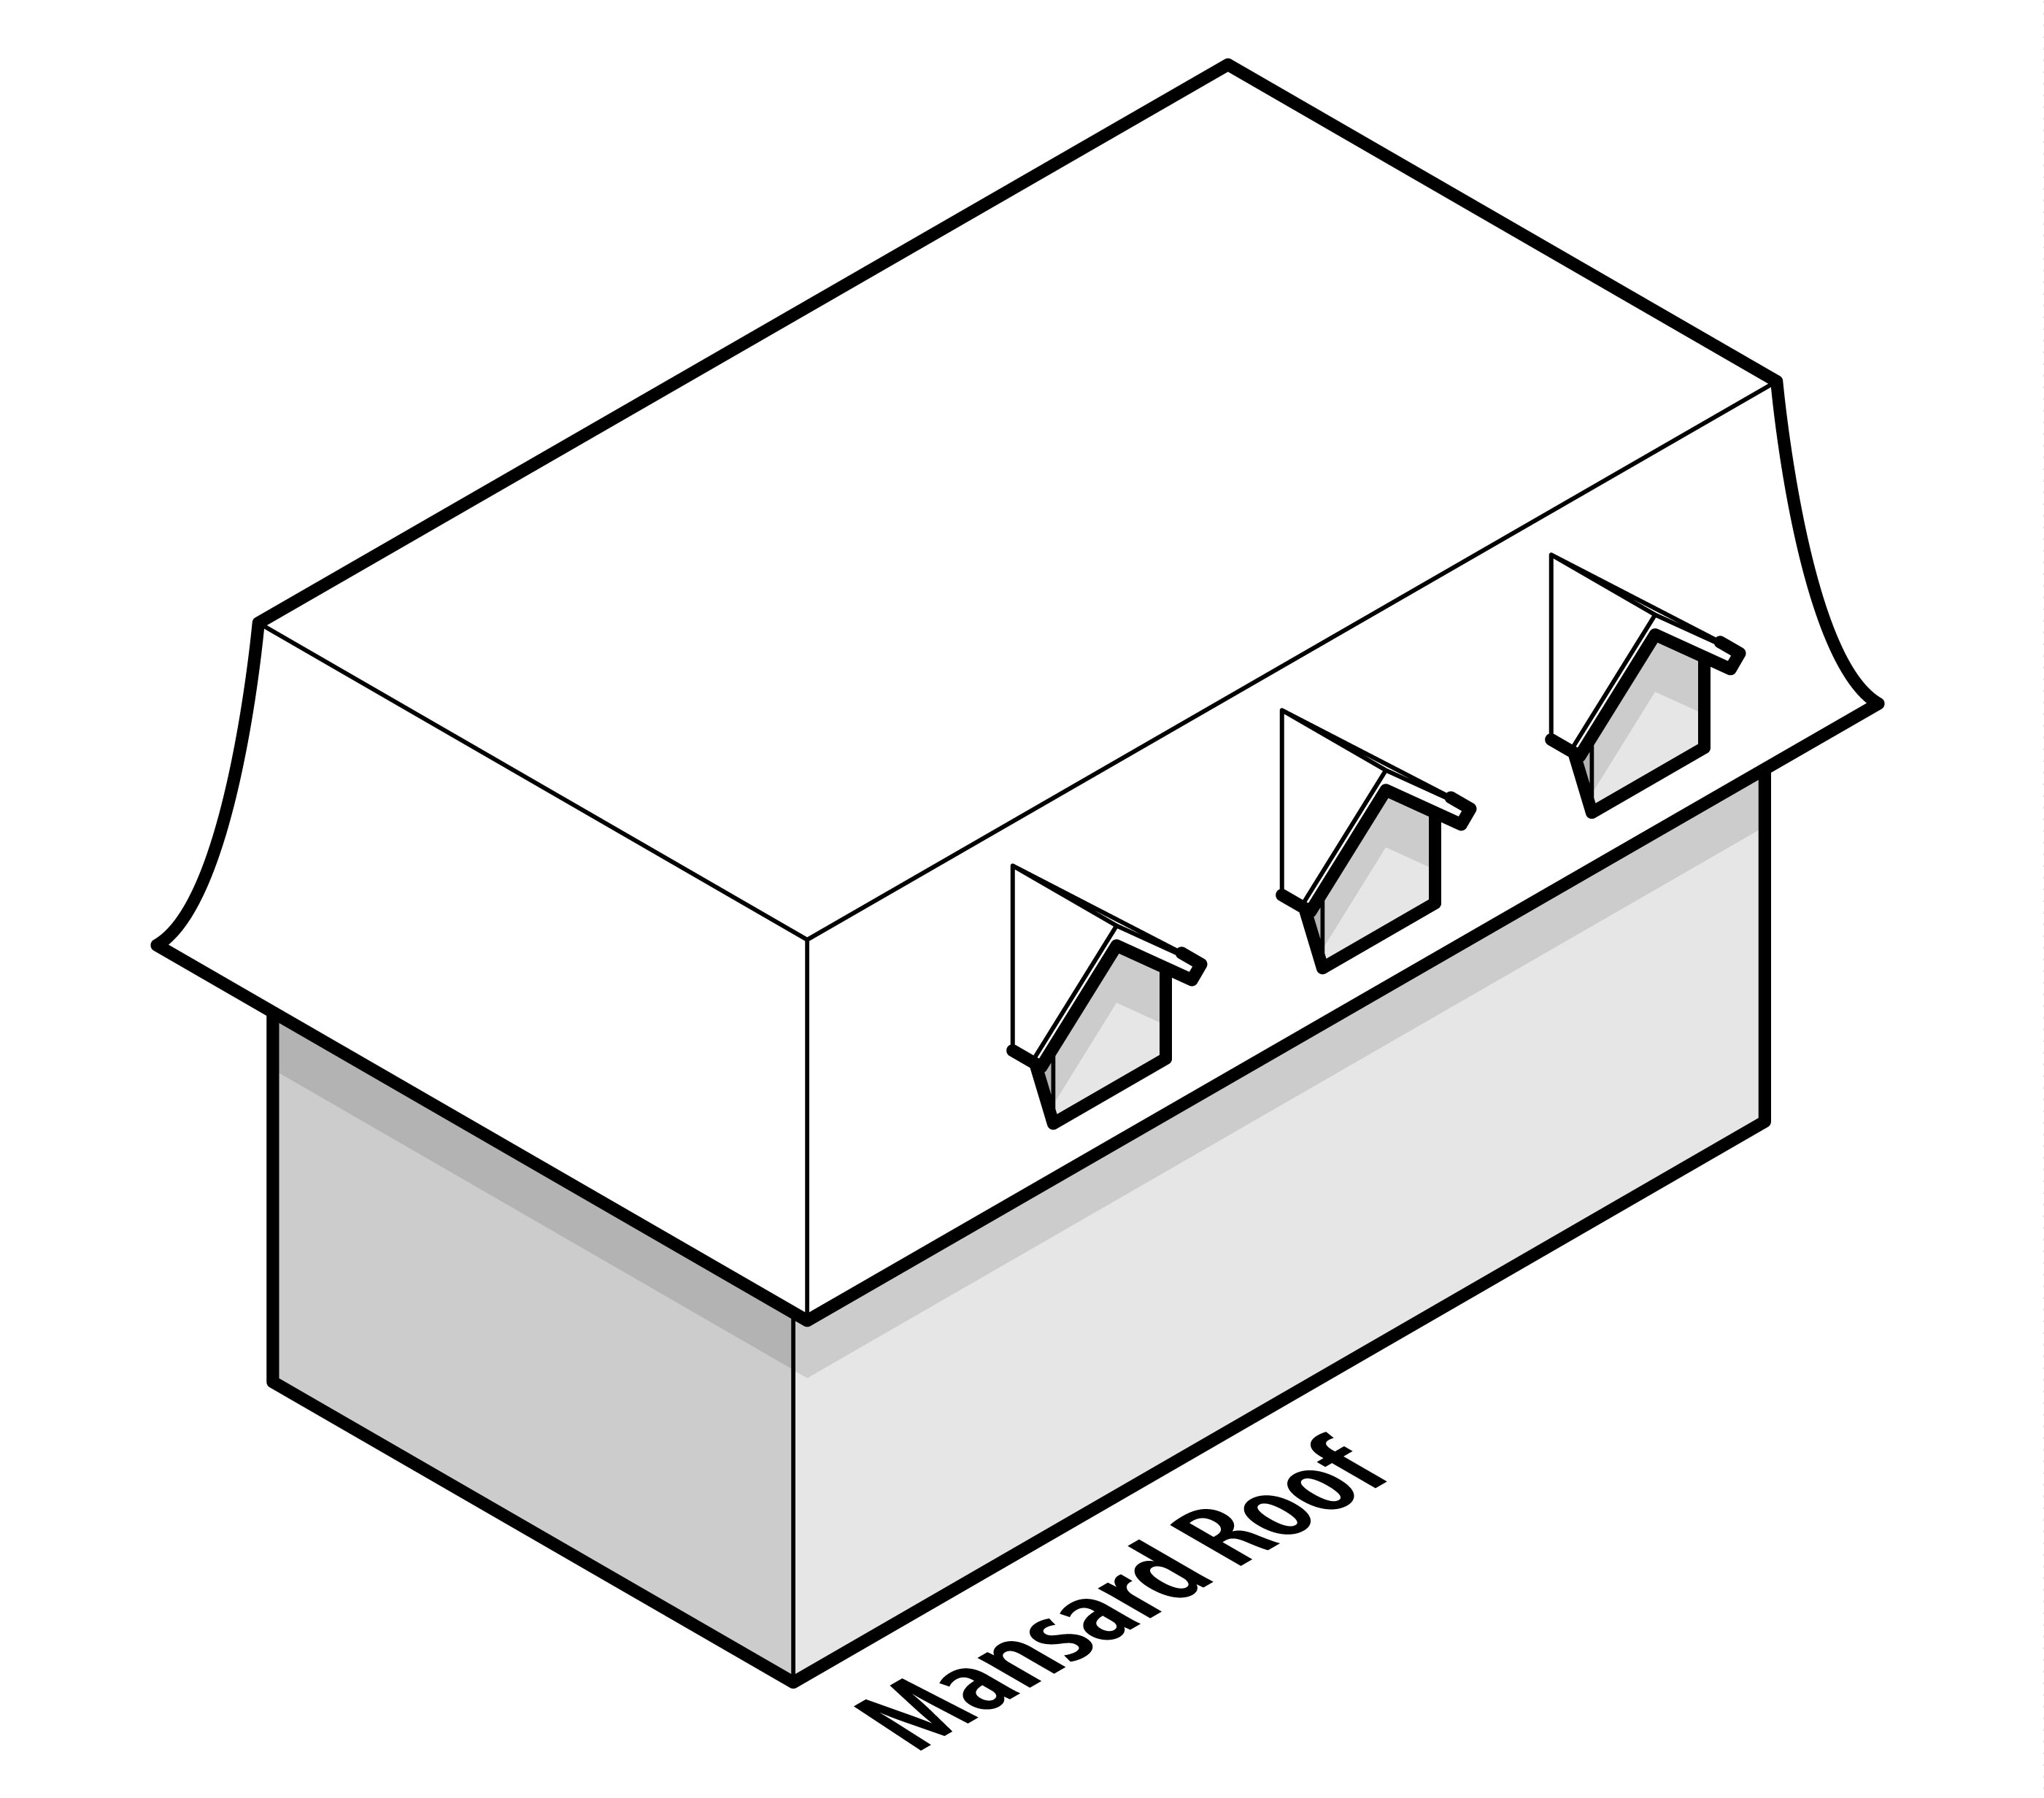 15 Types Of Roofs For Houses With Illustrations